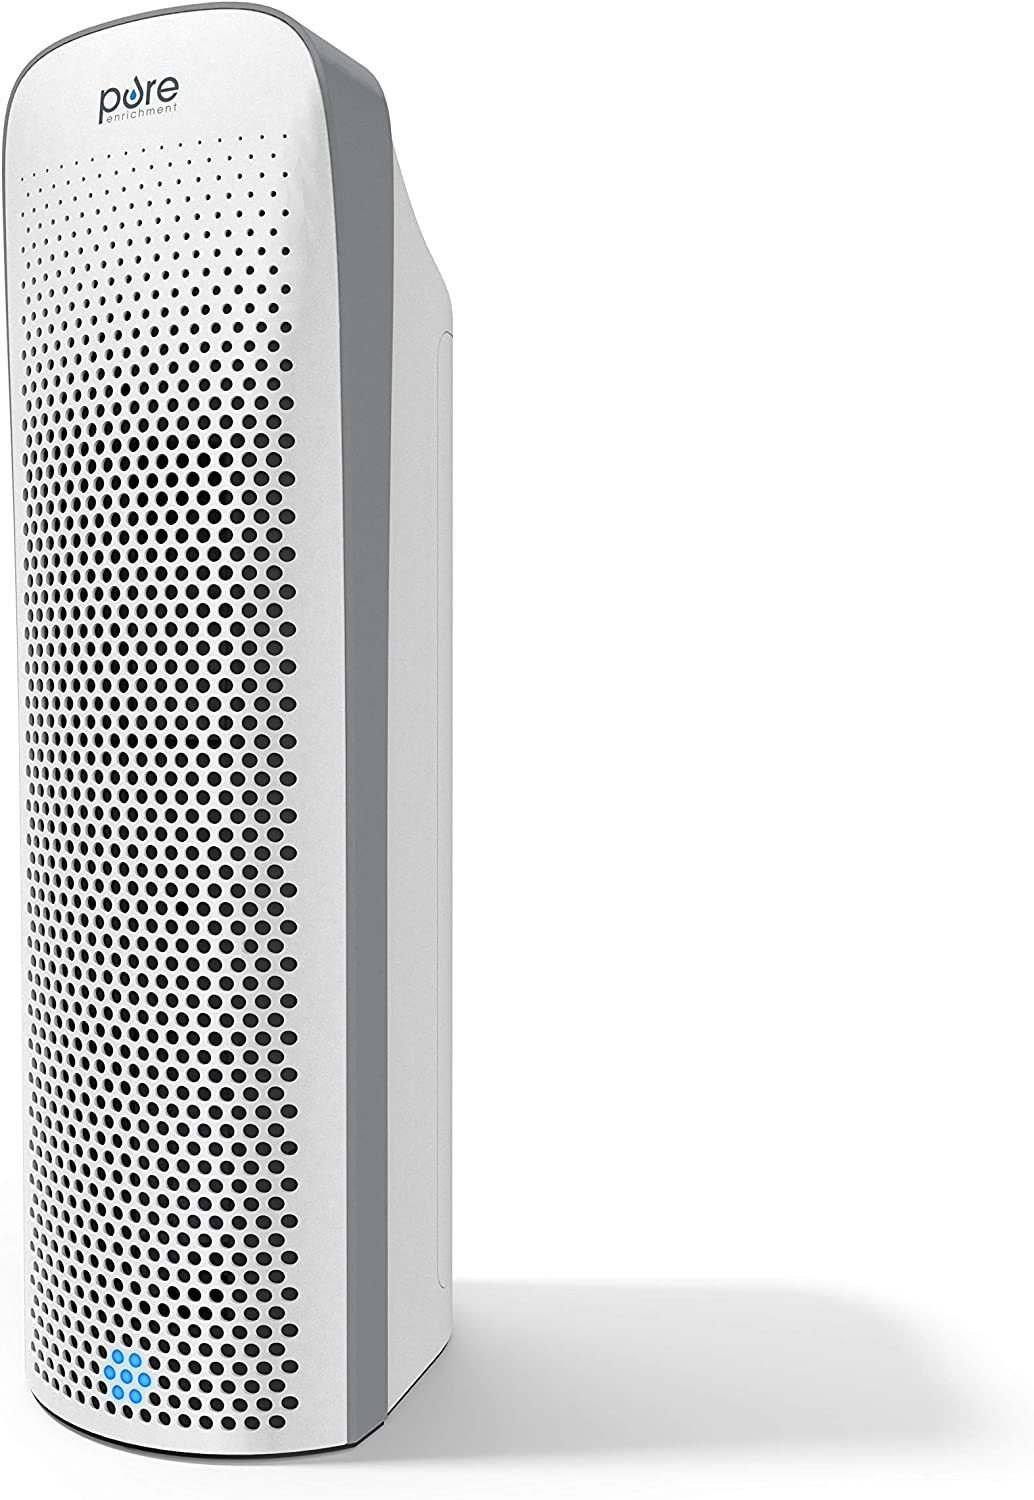 Pure Enrichment PureZone Elite 4-in-1 Air Purifier - True HEPA Filter + UV-C Sanitizer Cleans Air, Helps Alleviate Allergies, Eliminates Germs, Removes Pet Hair & Smoke, for Large Rooms